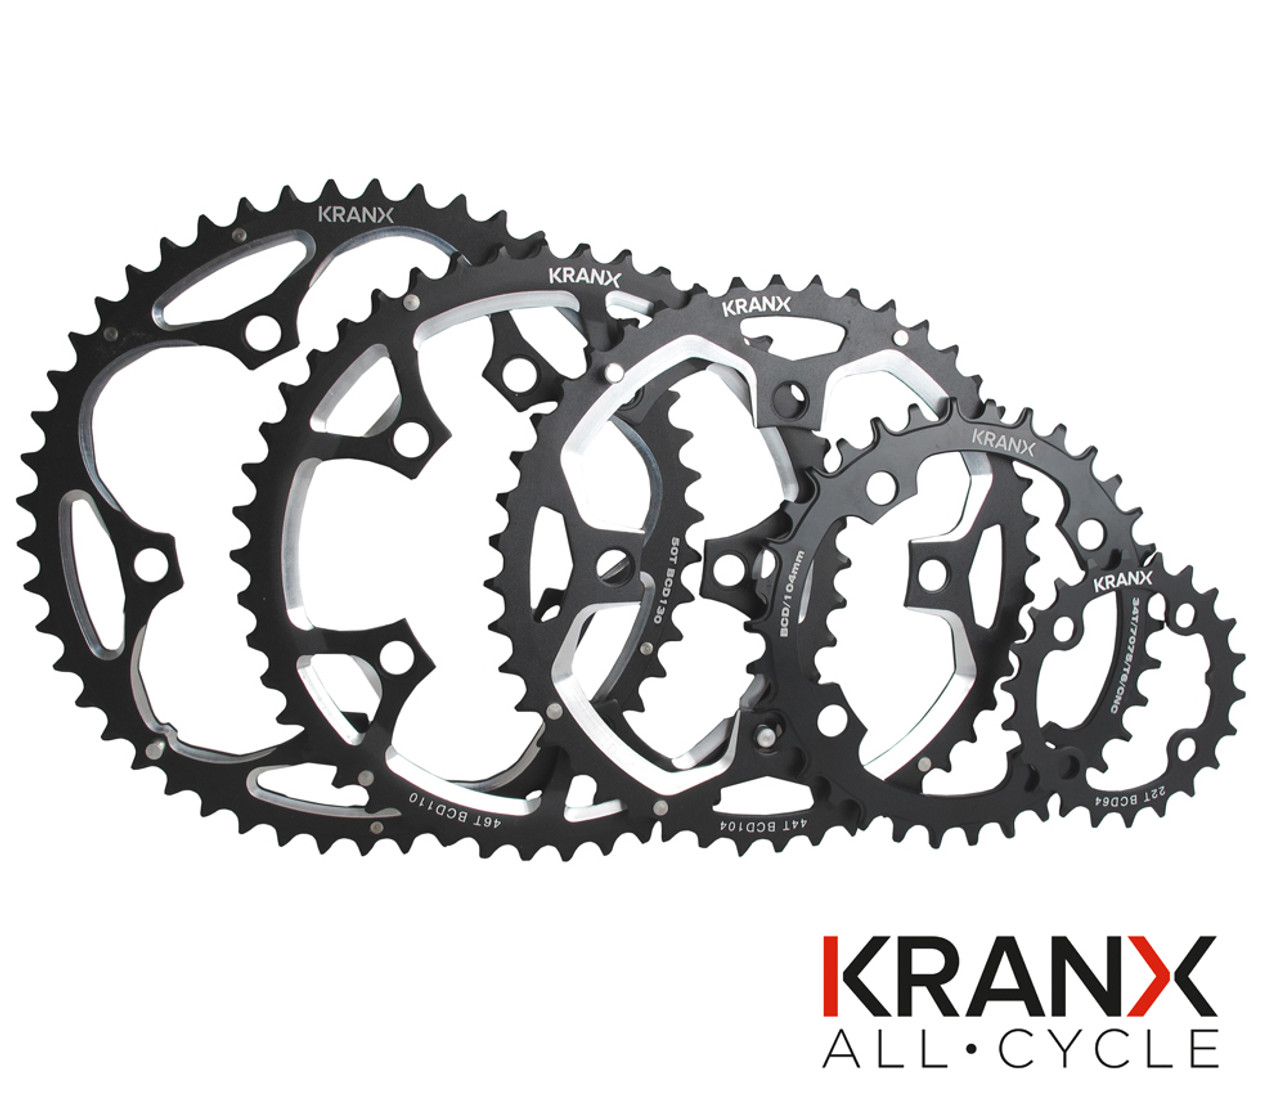 KranX 110BCD Alloy 5 Arm 9/10 Speed Chainring in Black All Sizes